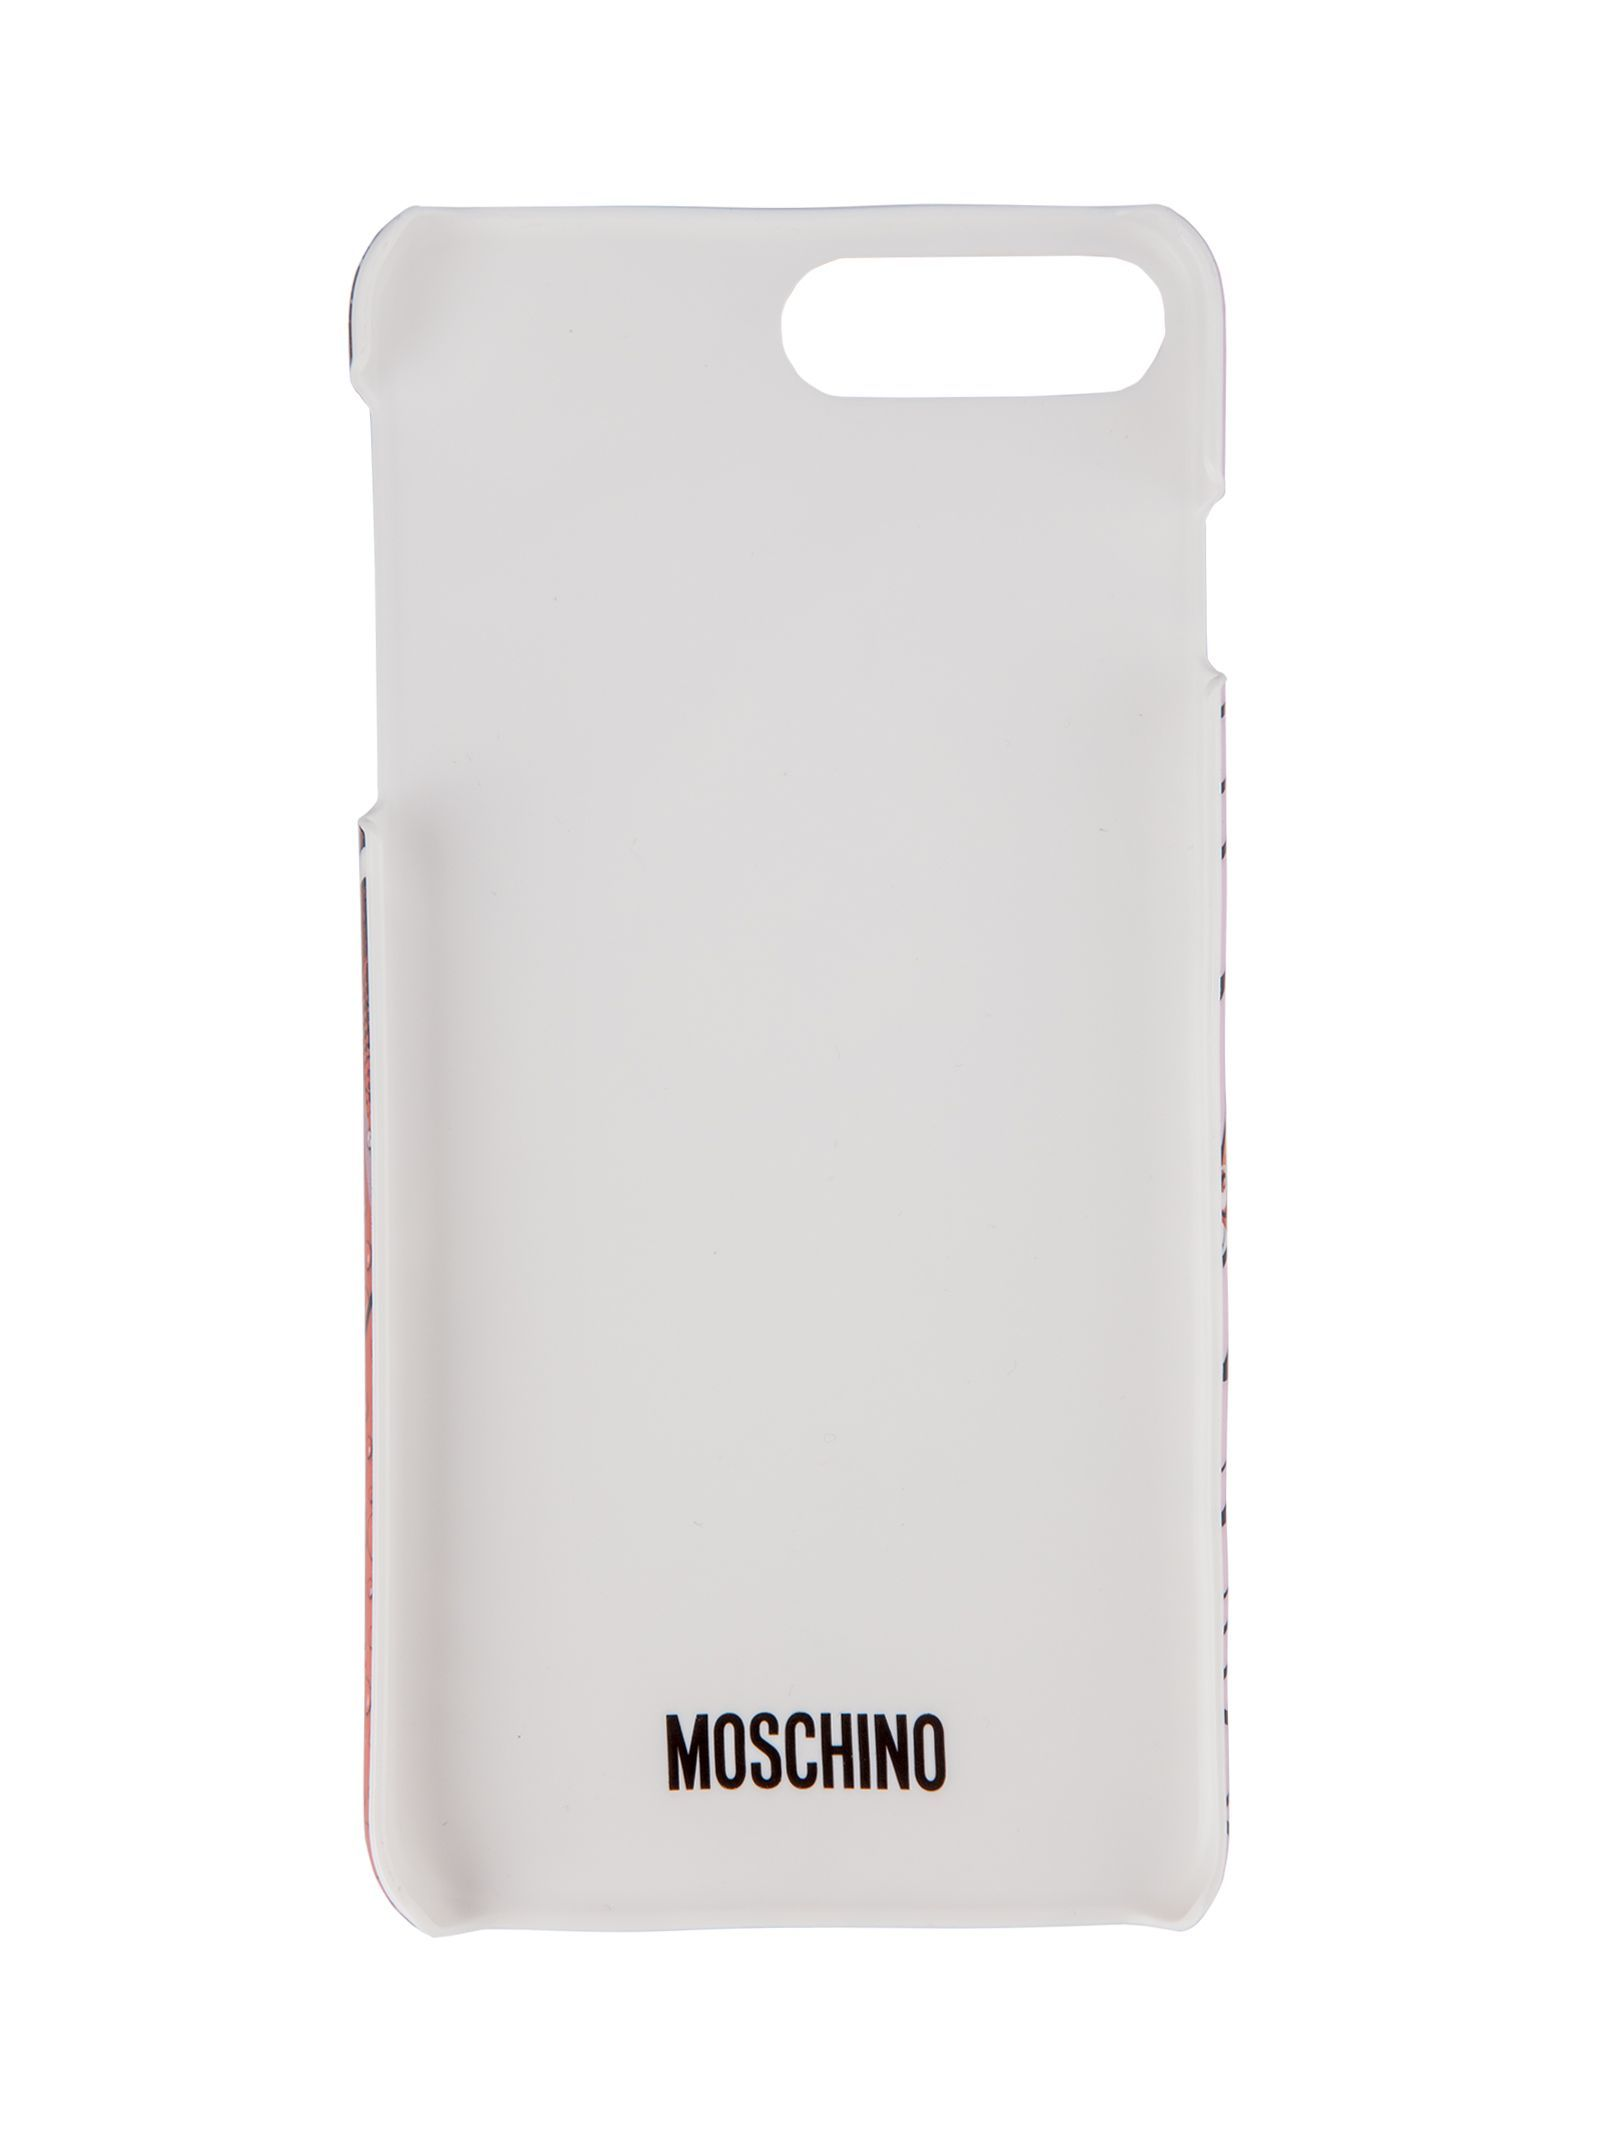 MOSCHINO WOMEN'S A797983521115 MULTICOLOR ACRYLIC COVER